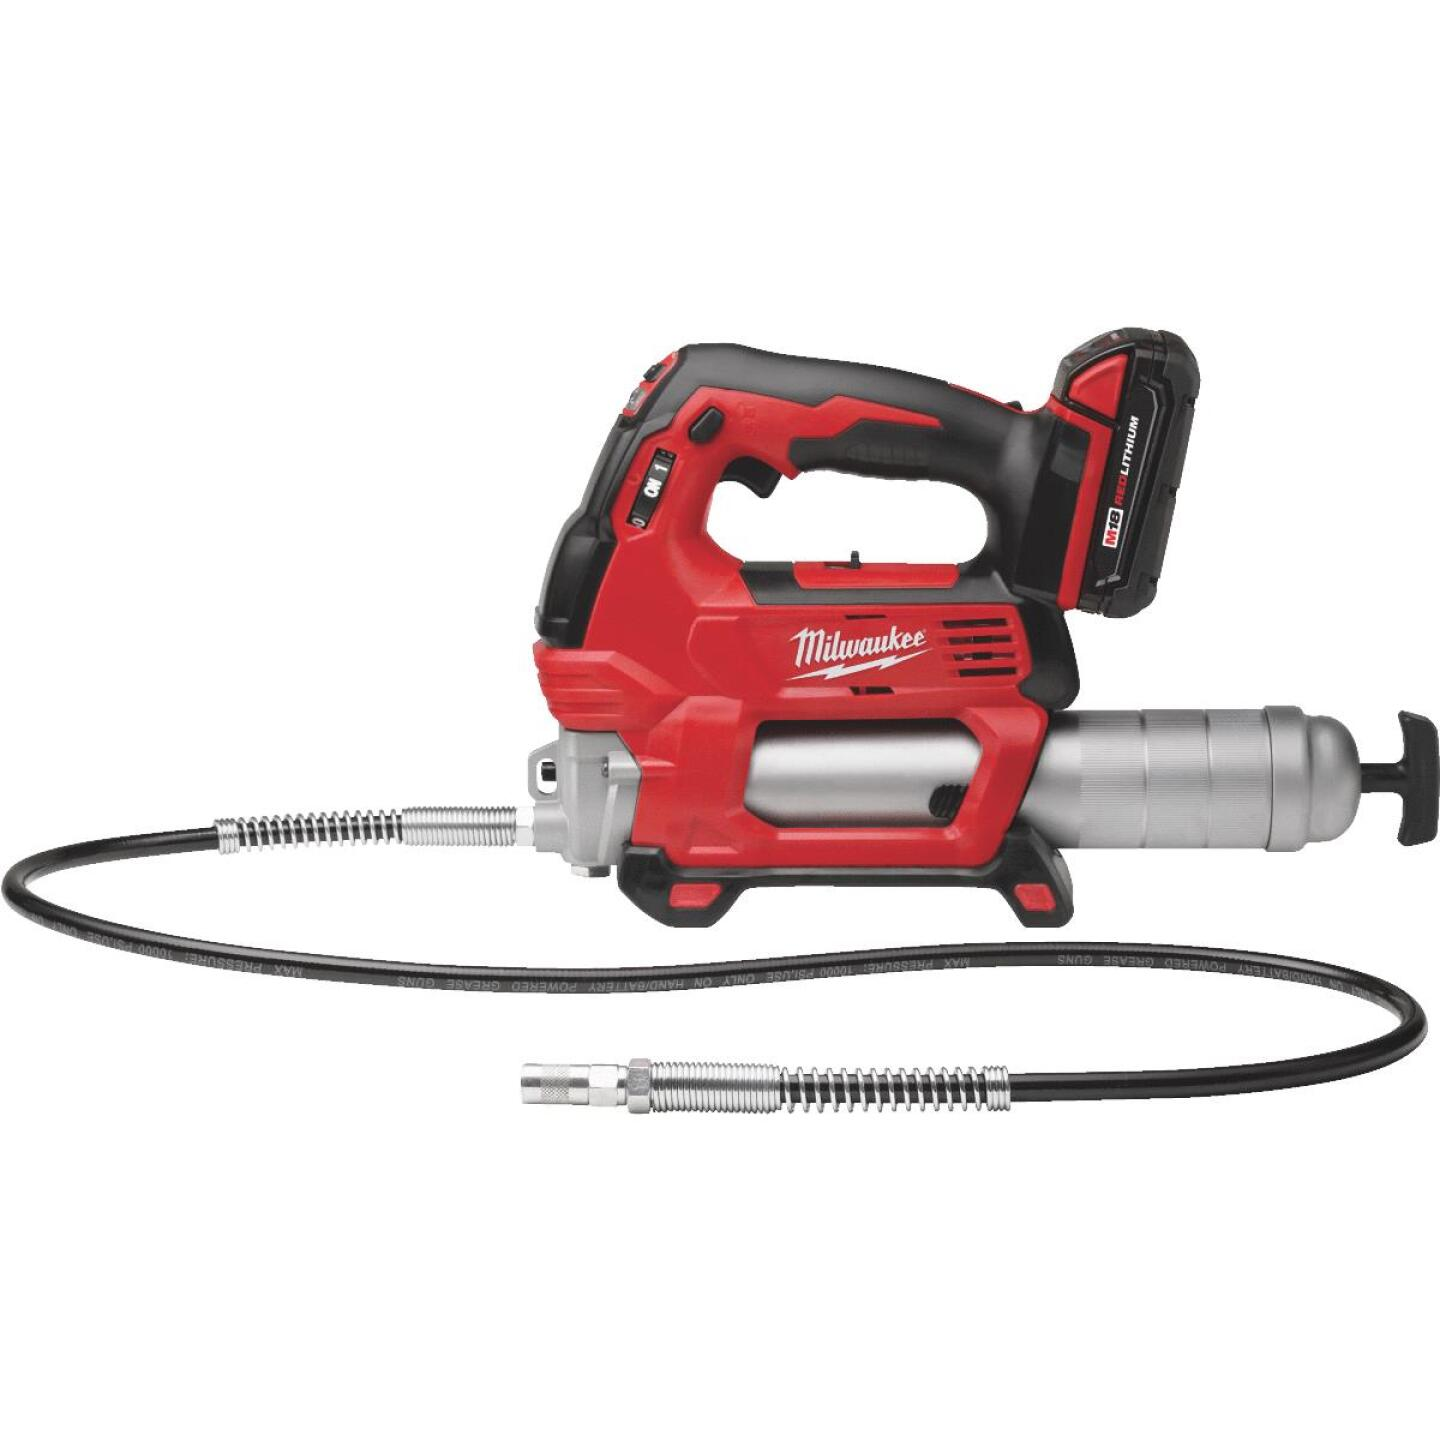 Milwaukee M18 18-Volt Lithium-Ion 2-Speed Cordless Grease Gun Kit Image 1